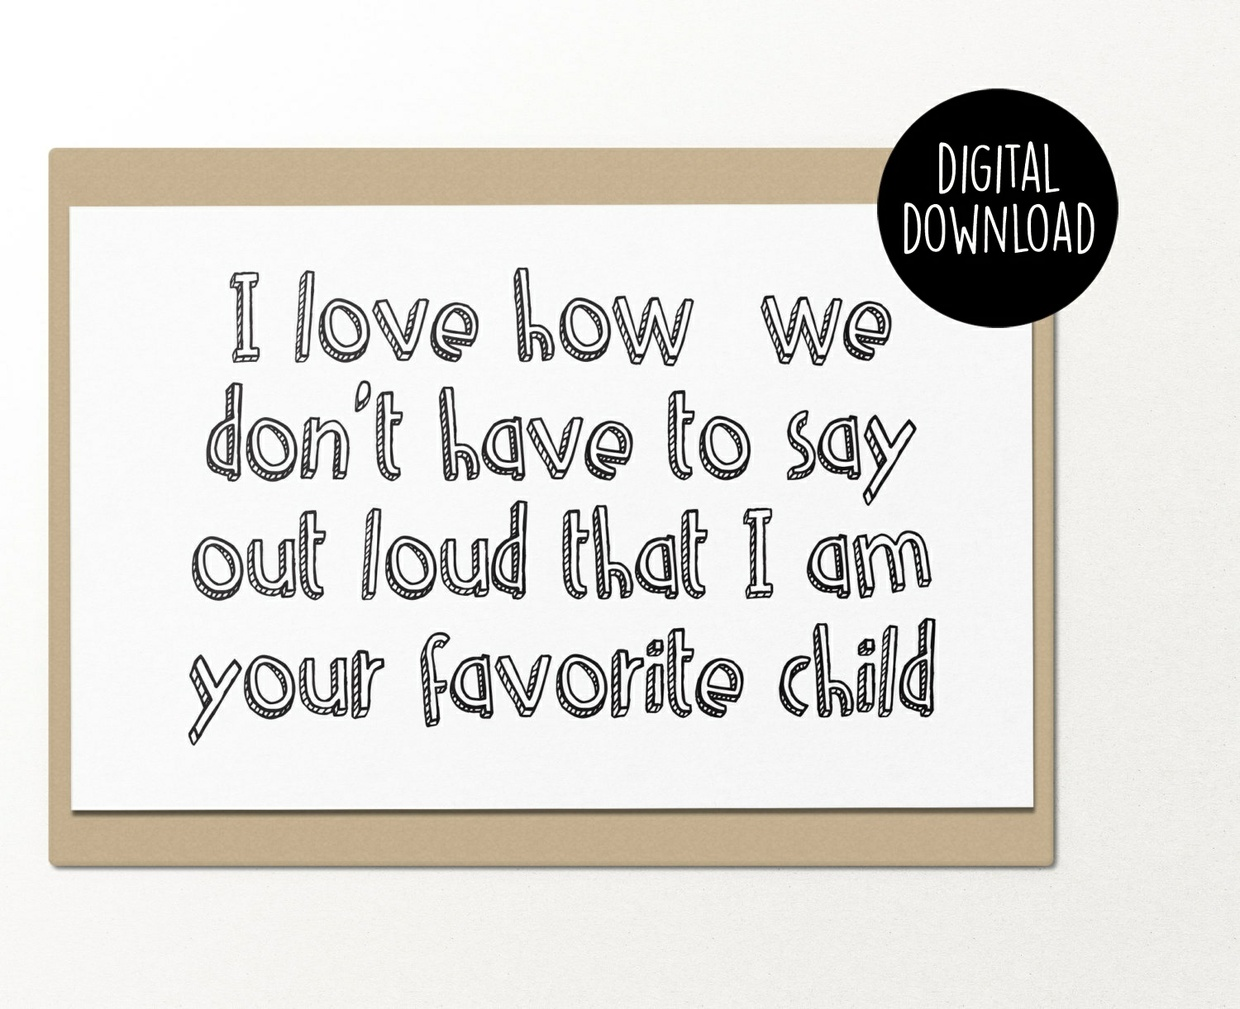 I love how we don't have to say out loud that I'm your favorite child printable greeting card